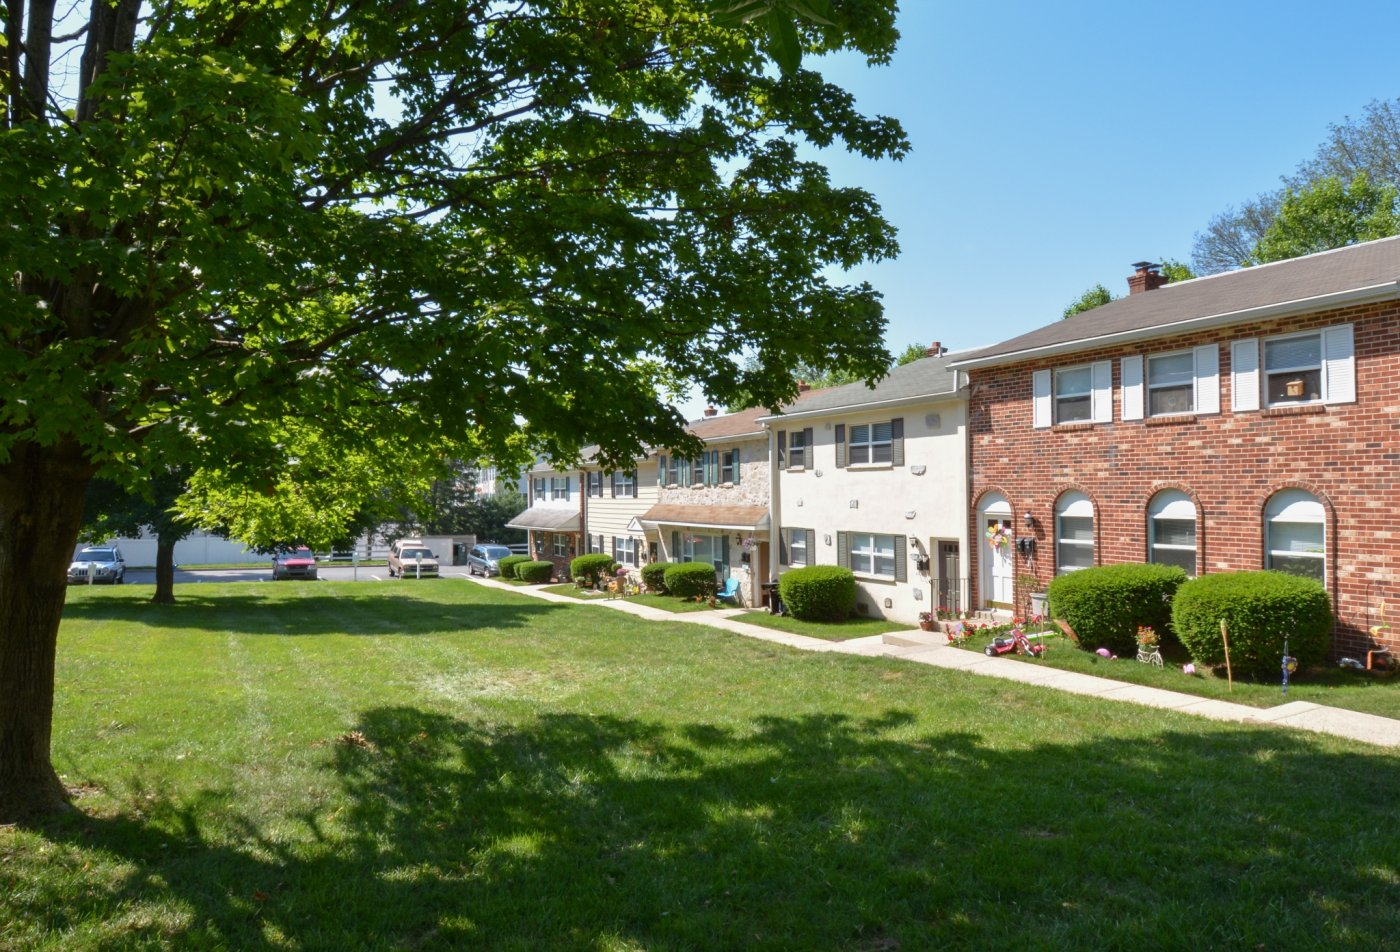 Apartments for rent in Boothwyn, PA | Rolling Glen Townhomes and Apartments